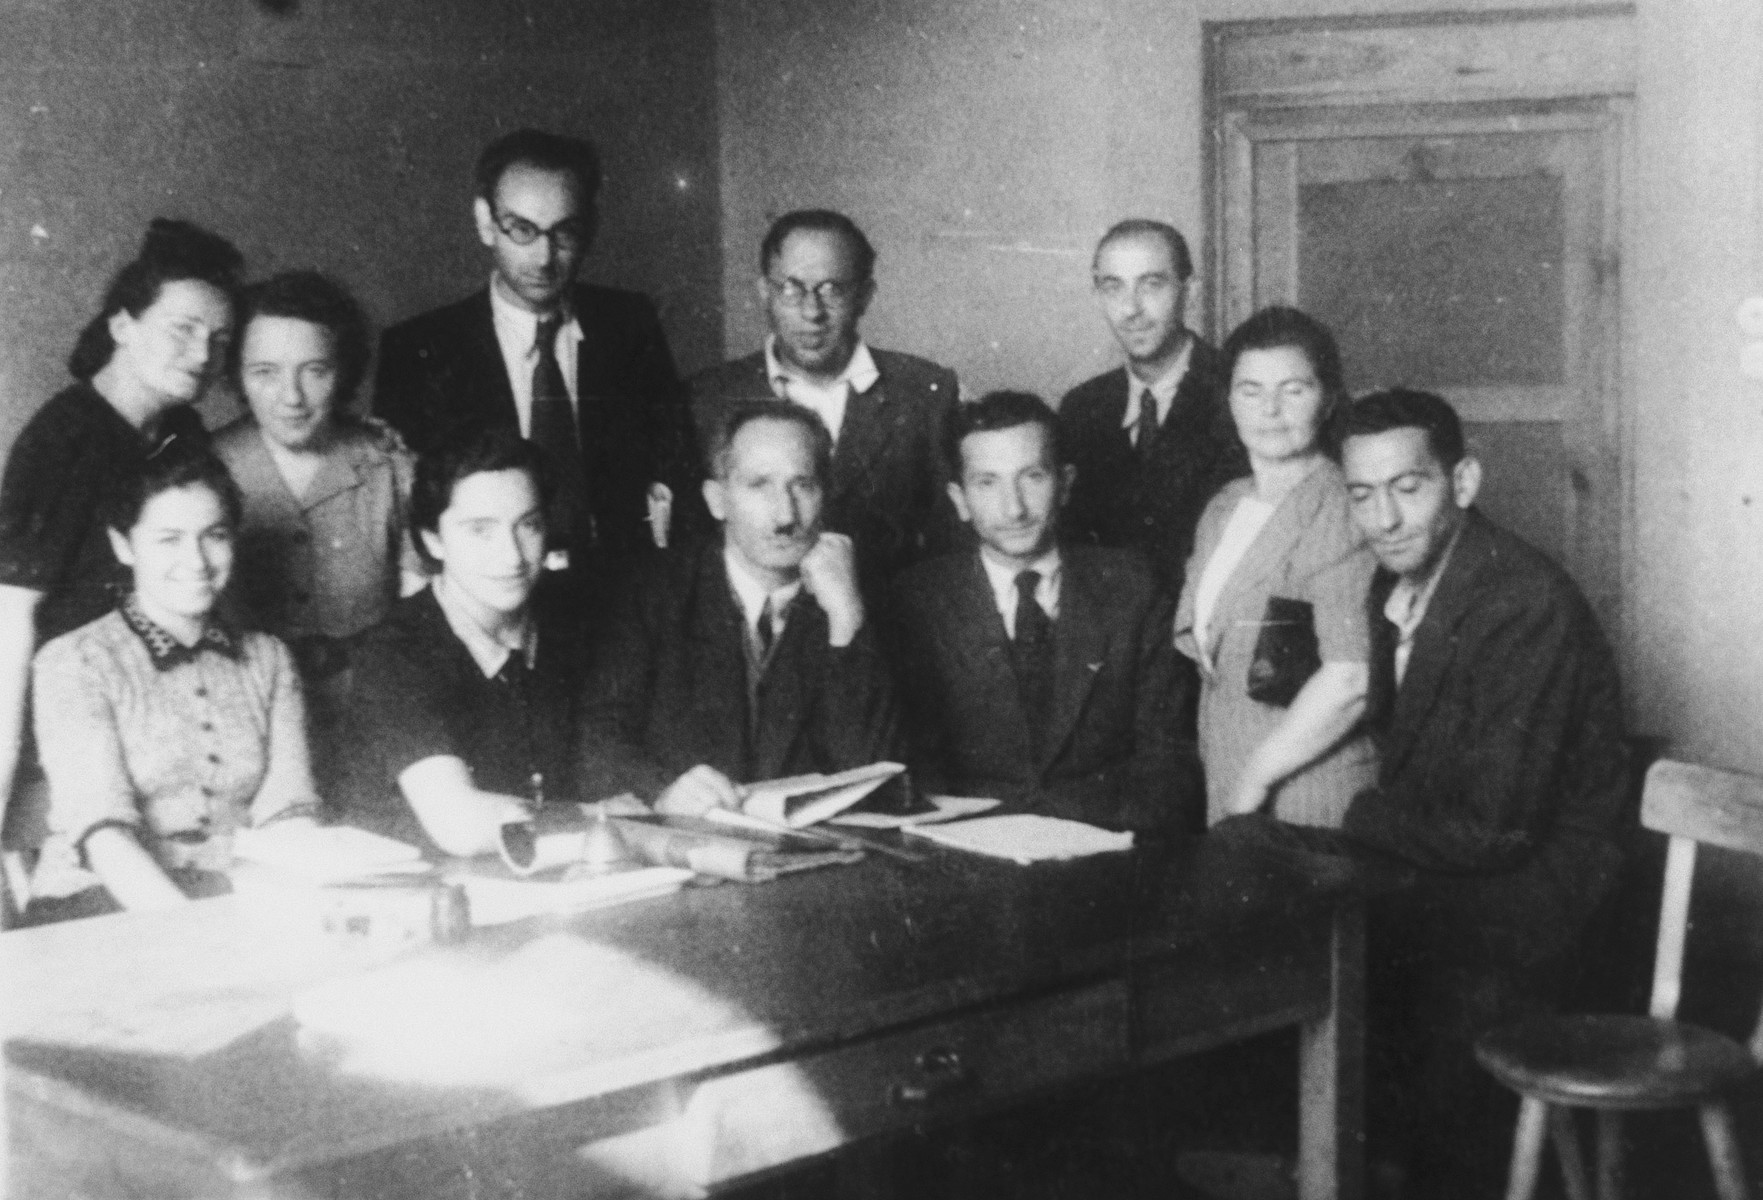 Teachers of the Szczecin Peretz Yiddish School.  Those pictured include Genia Kac-Storch (second from the left) and Lev Tenenbaum (second from the right).